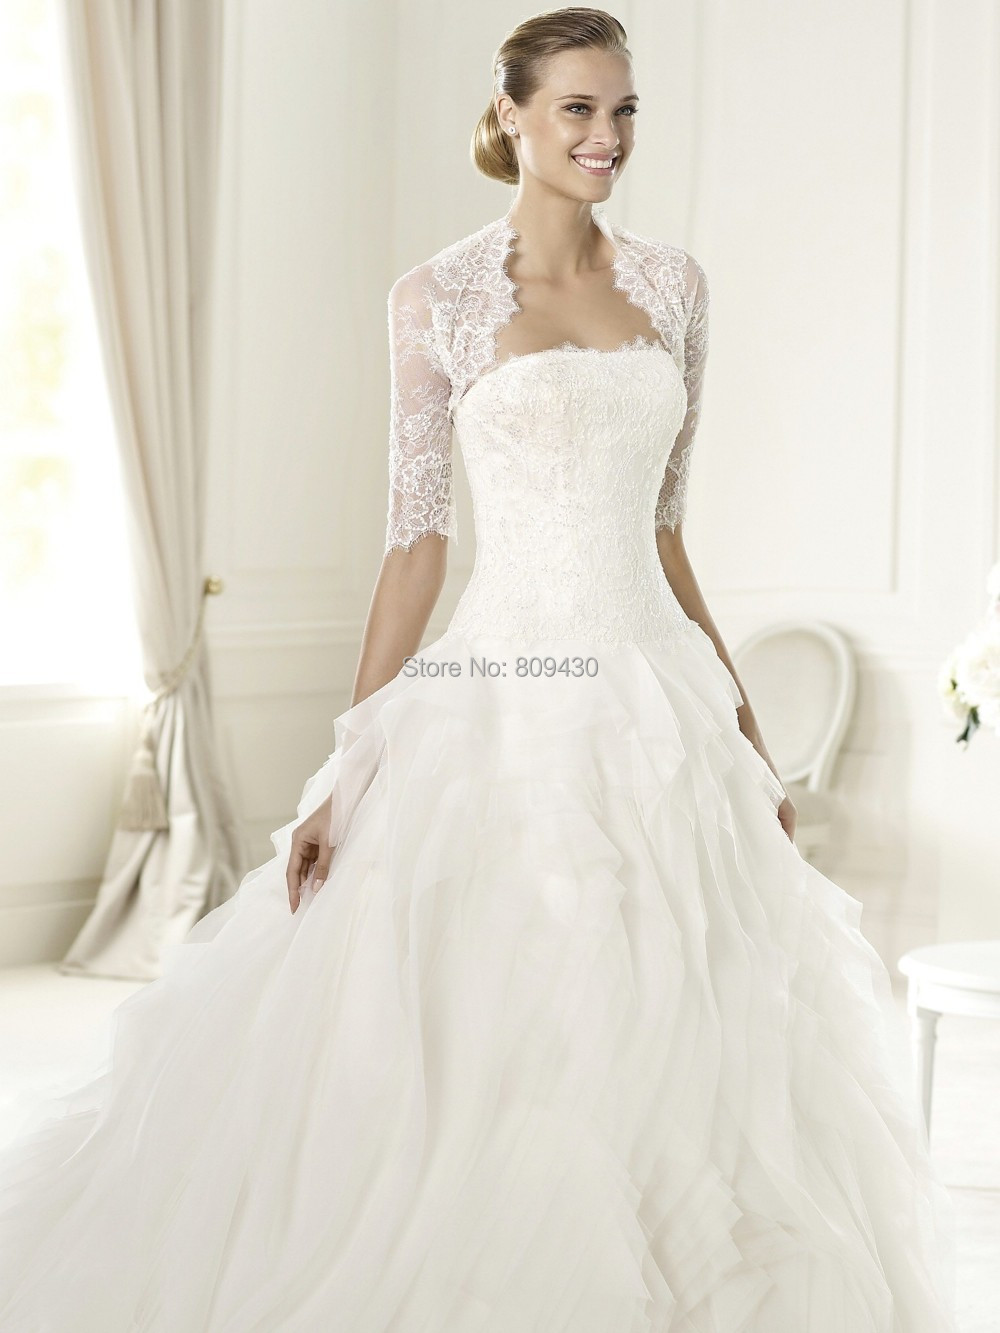 Online Shop Ulua Ball Gown Off White Strapless Built In Bra Wedding Dress With Bolero Luxurious Vestidos De Noiva